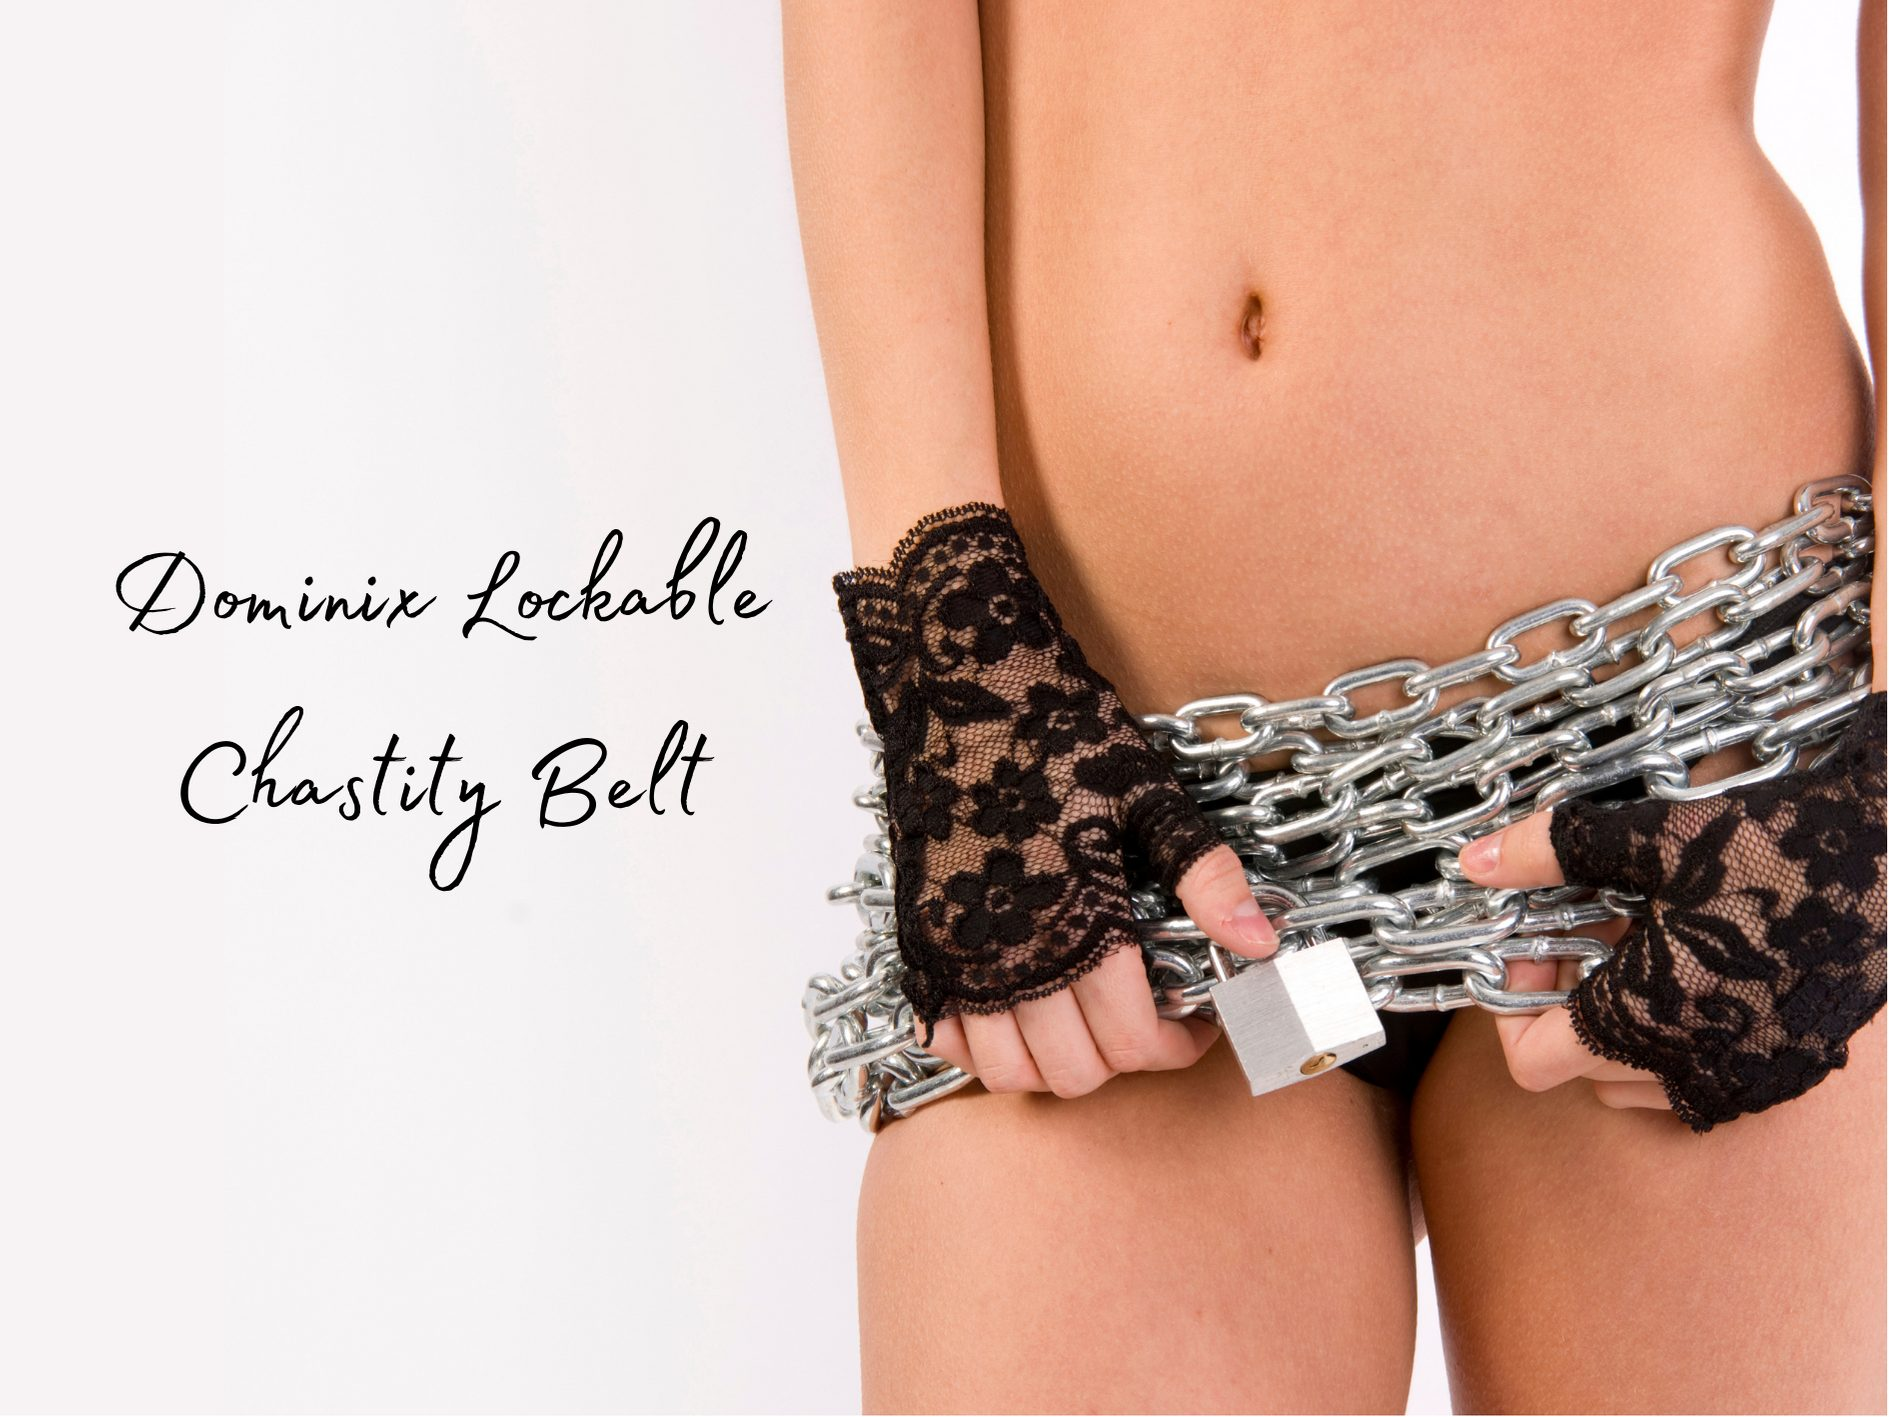 [Kink Product Review] Dominix Deluxe Lockable Chastity Belt